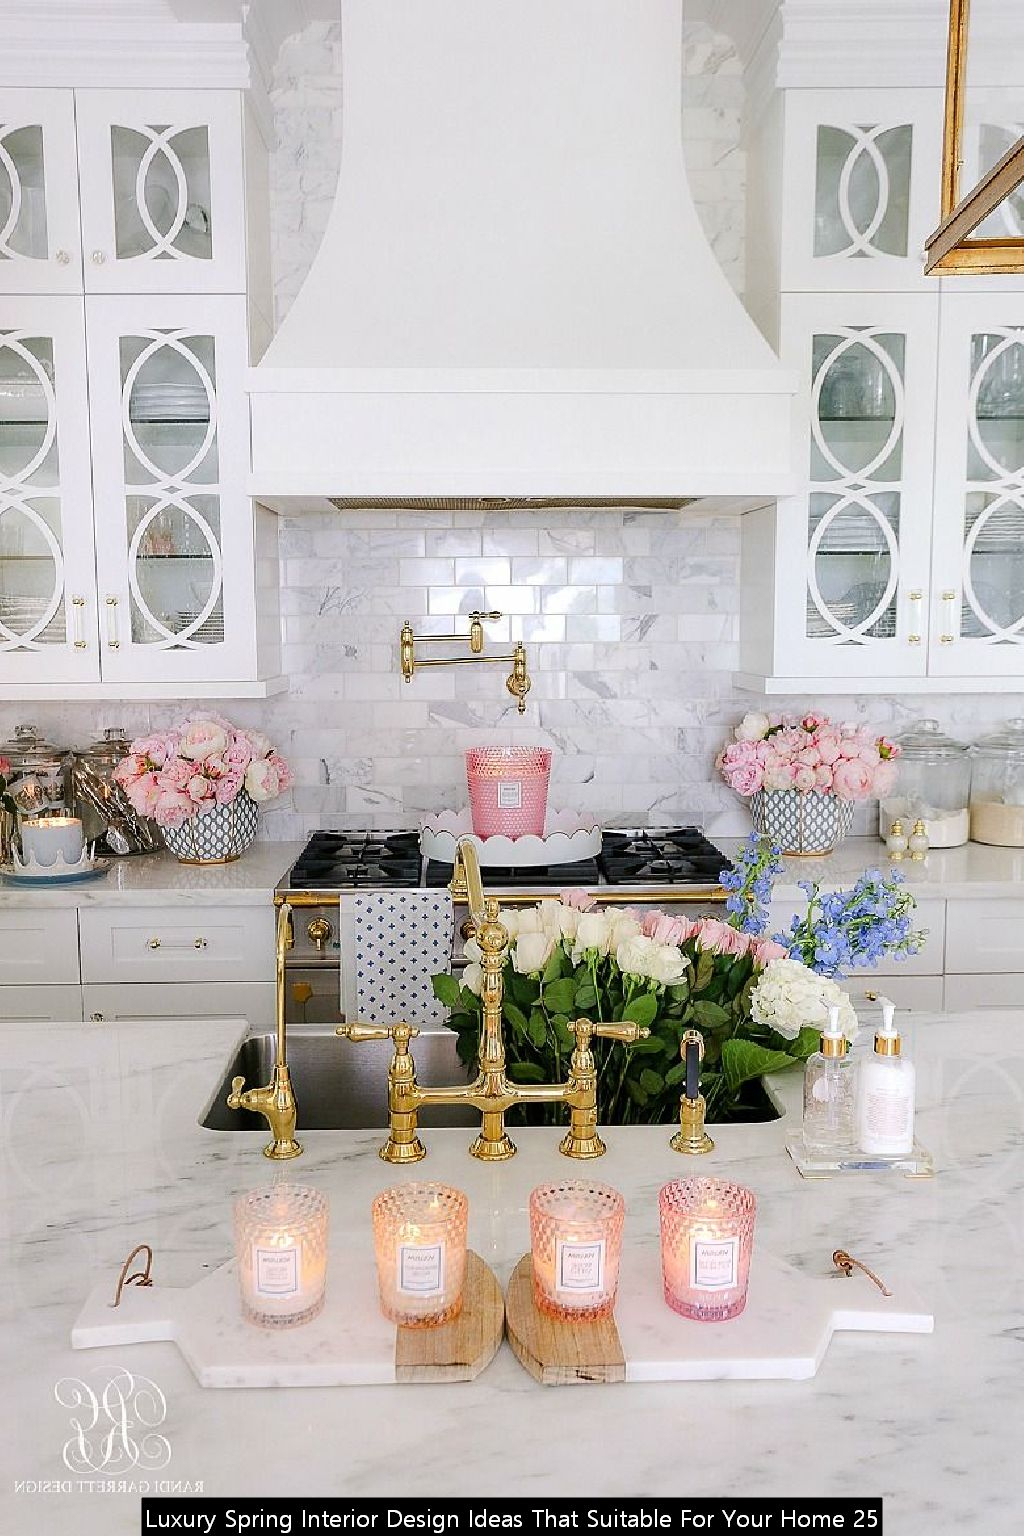 Luxury Spring Interior Design Ideas That Suitable For Your Home 25